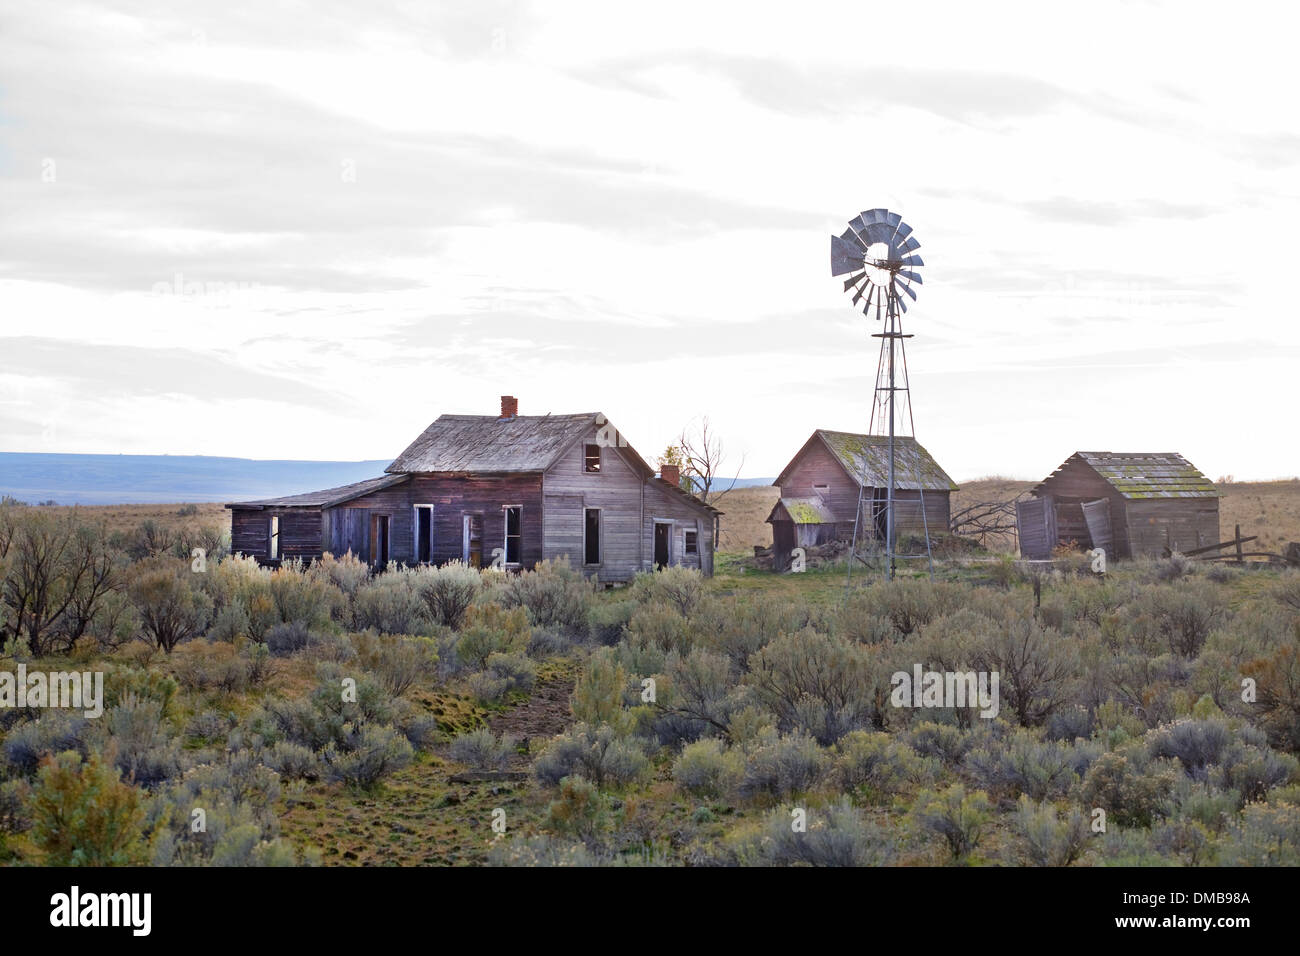 An abandoned Depression era farm in the sagebrush flatlands near the town of Kent, in north-central oregon - Stock Image